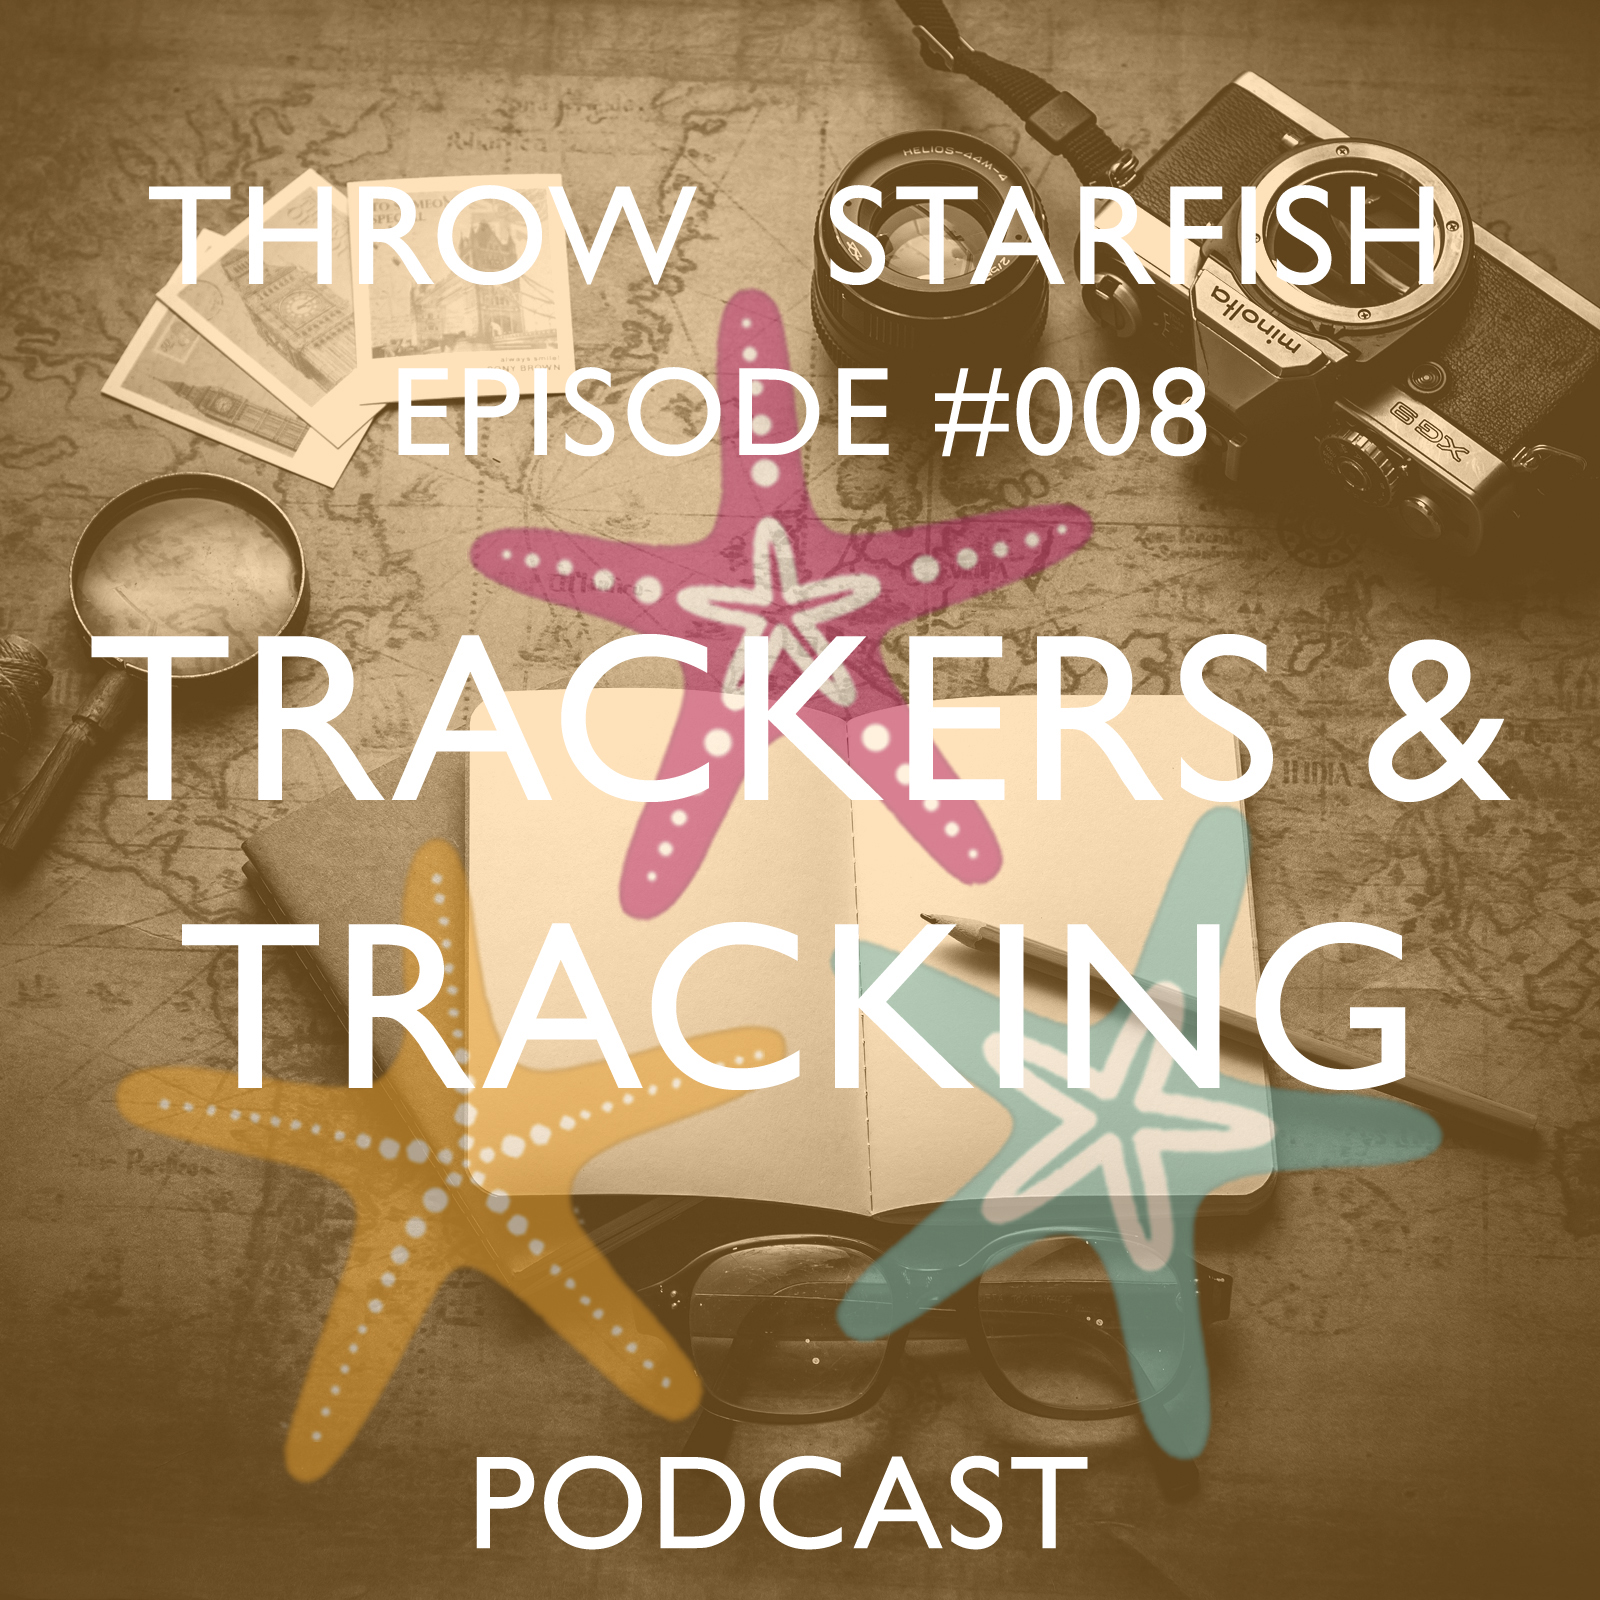 Click on the image to listen to our Podcast on Trackers and Tracking...